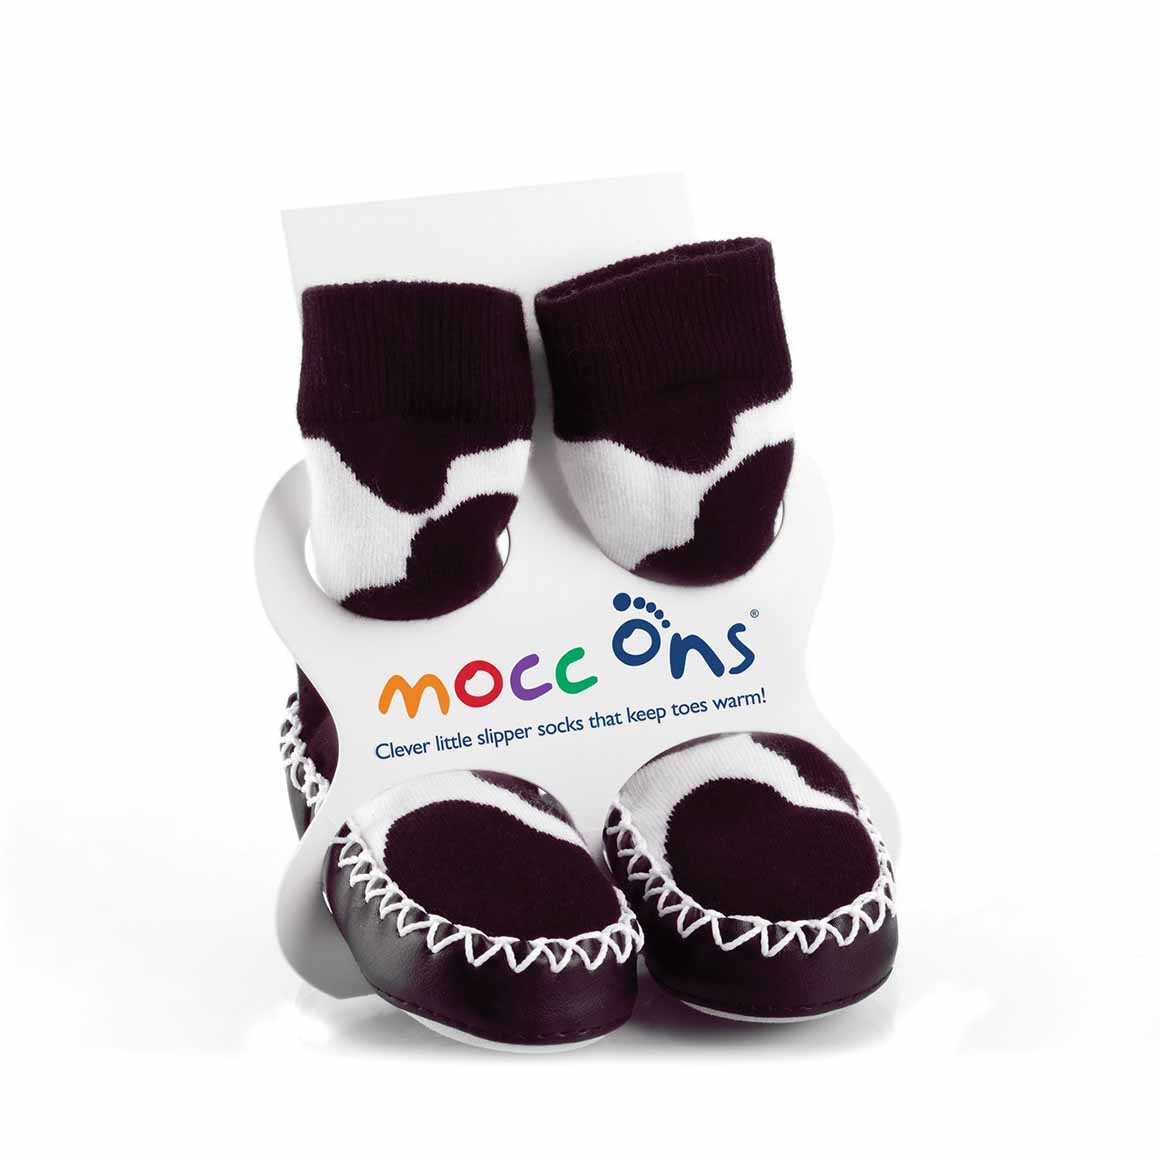 MOCC ONS Cow Print 12-18 | Trada Marketplace